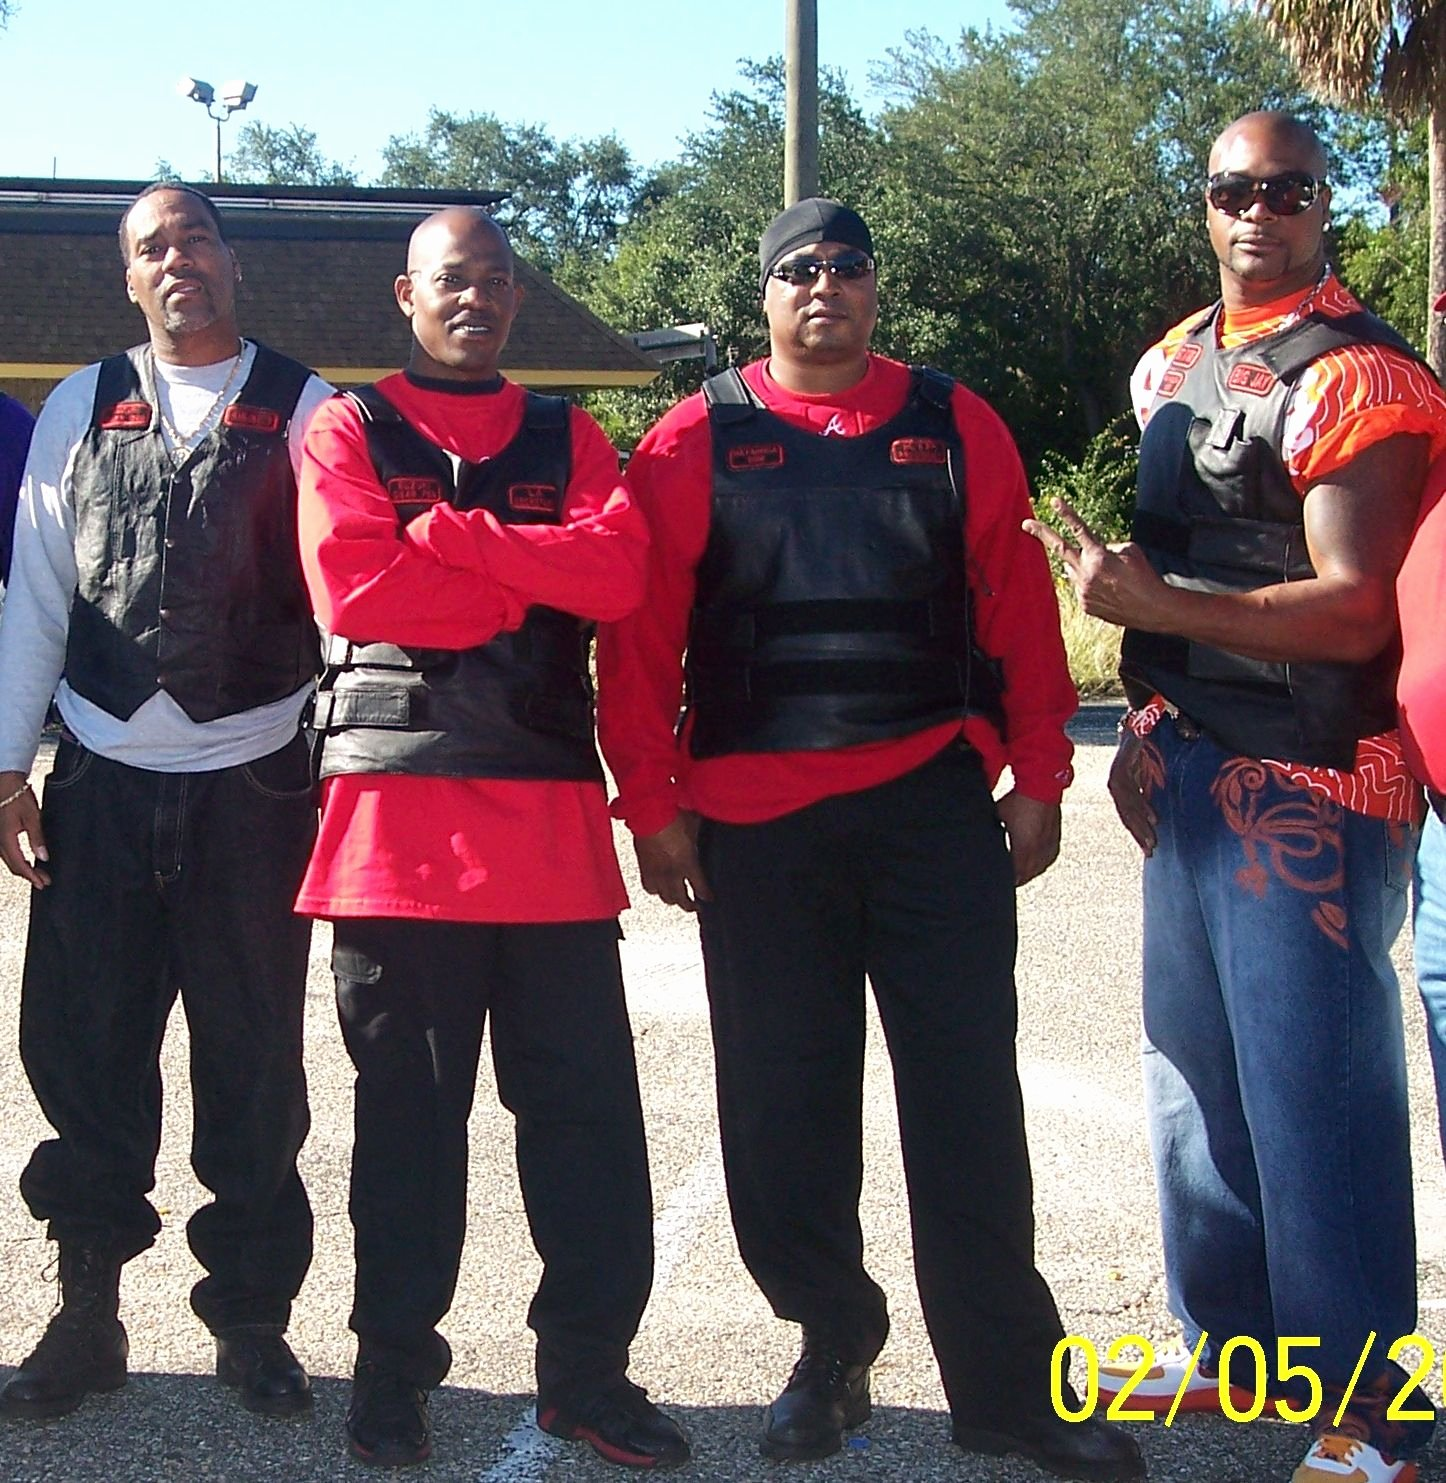 Motorcycle Club Application form Inspirational Pacesetters Munity Service Blog